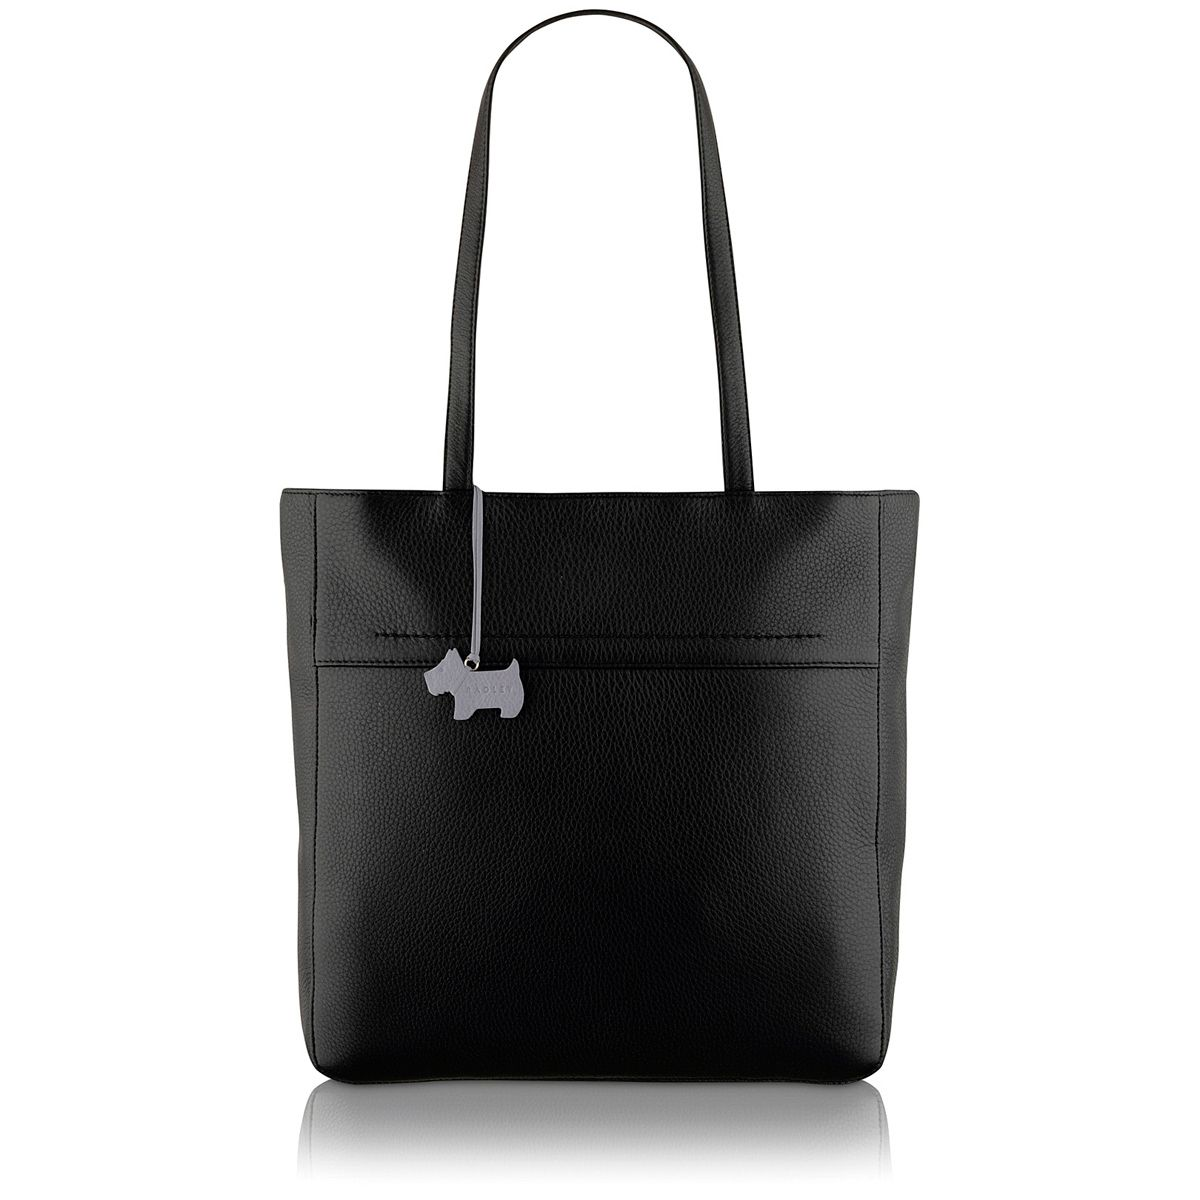 Overton black large leather tote bag